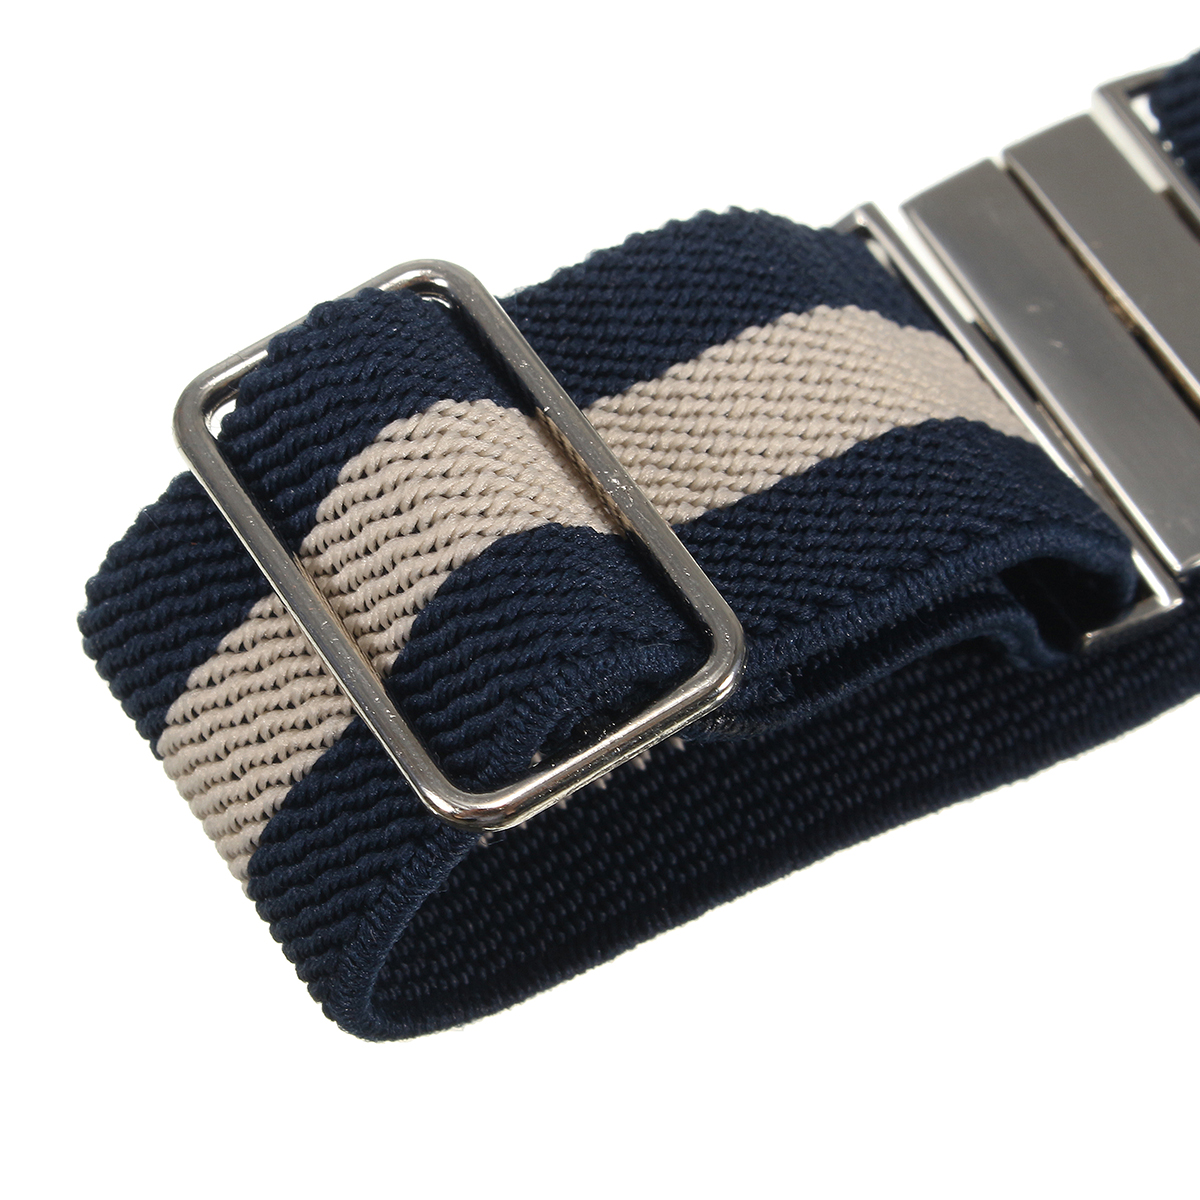 1Pair Suspender Double Grip Clip Men's Sock Durable Buckle